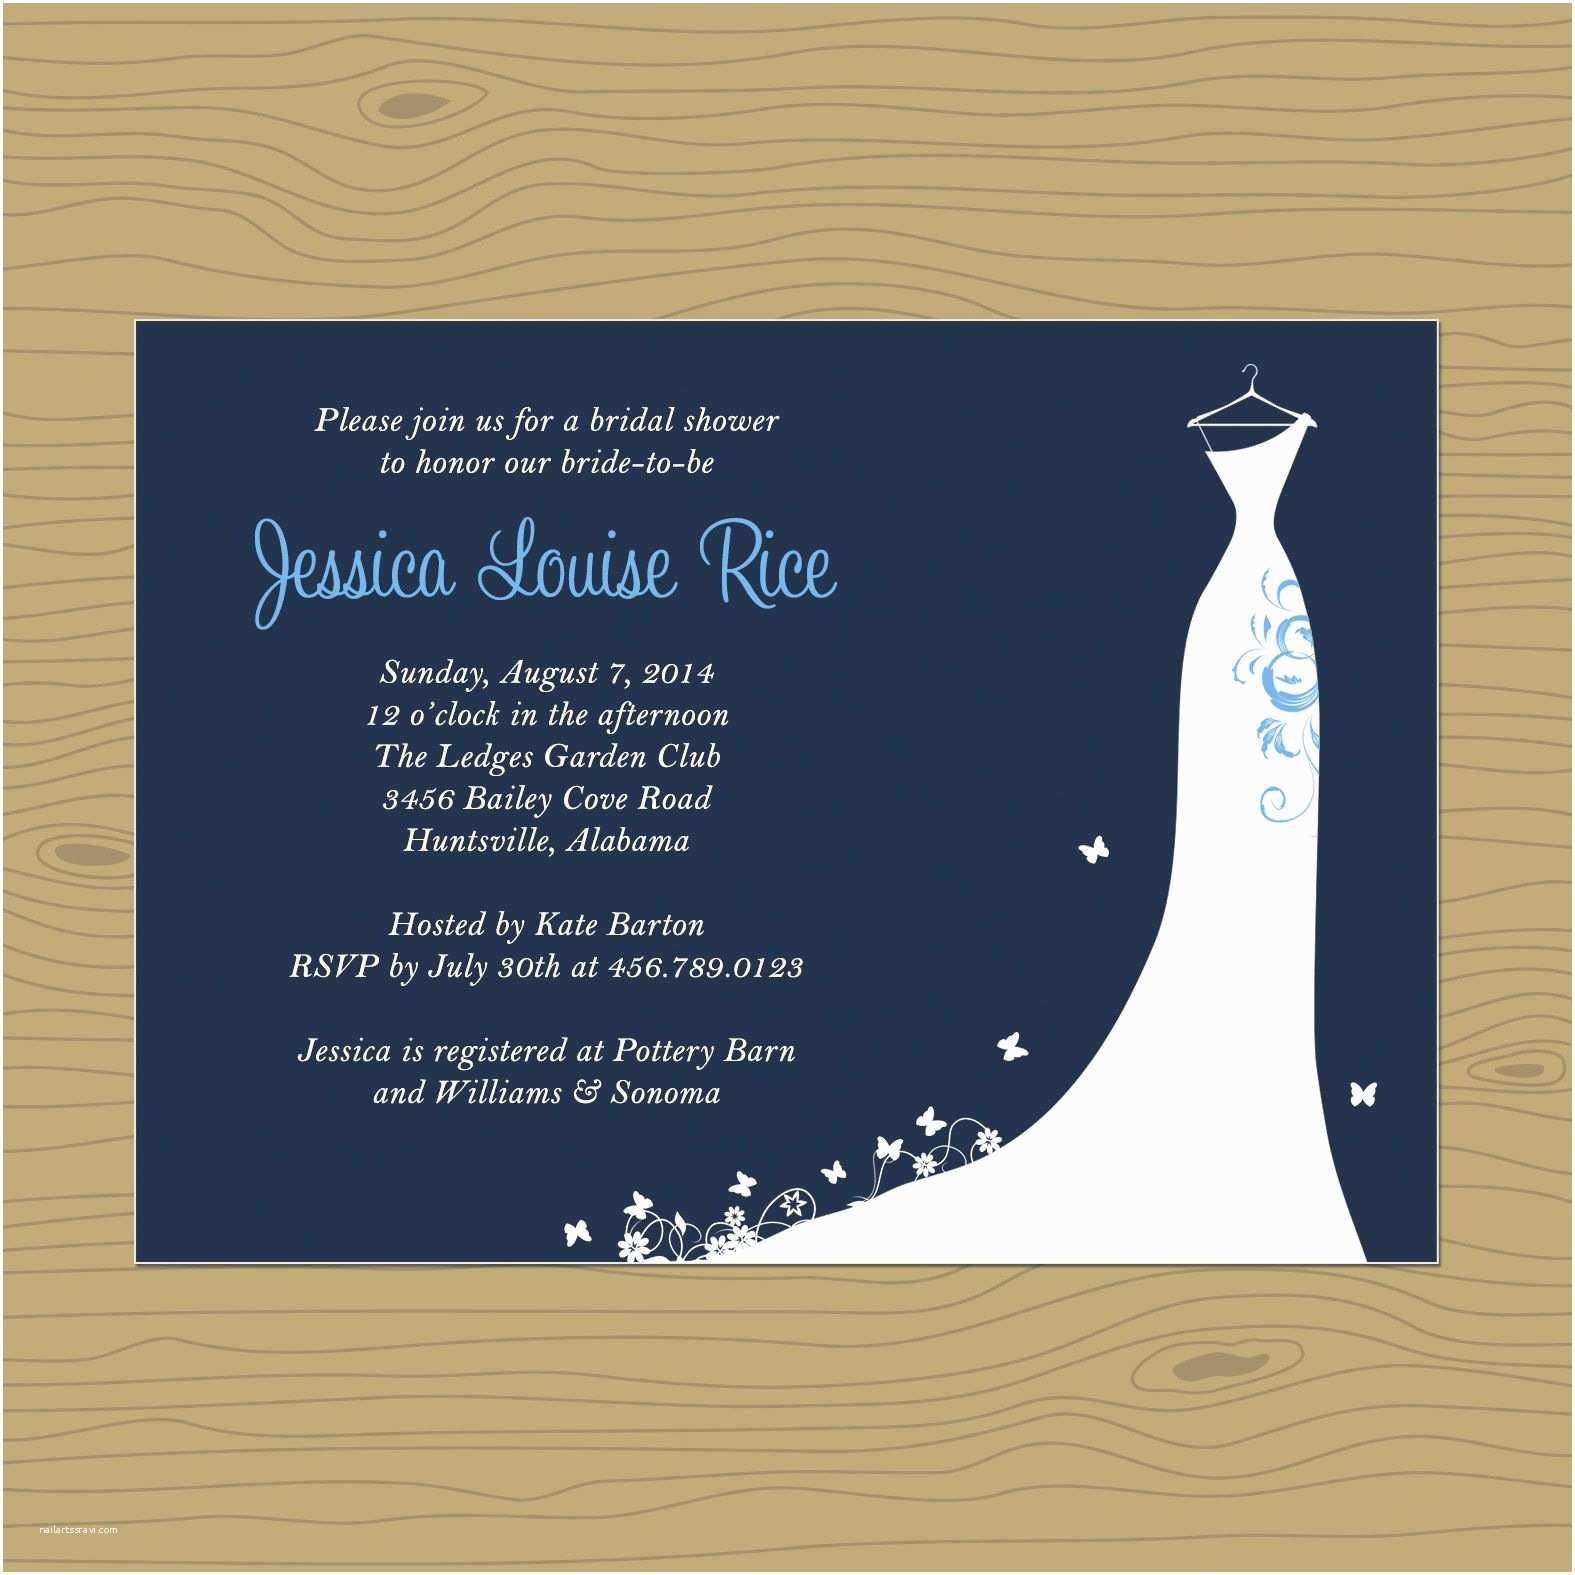 Vistaprint Wedding Invitations Vista Print Bridal Shower Invites Various Invitation